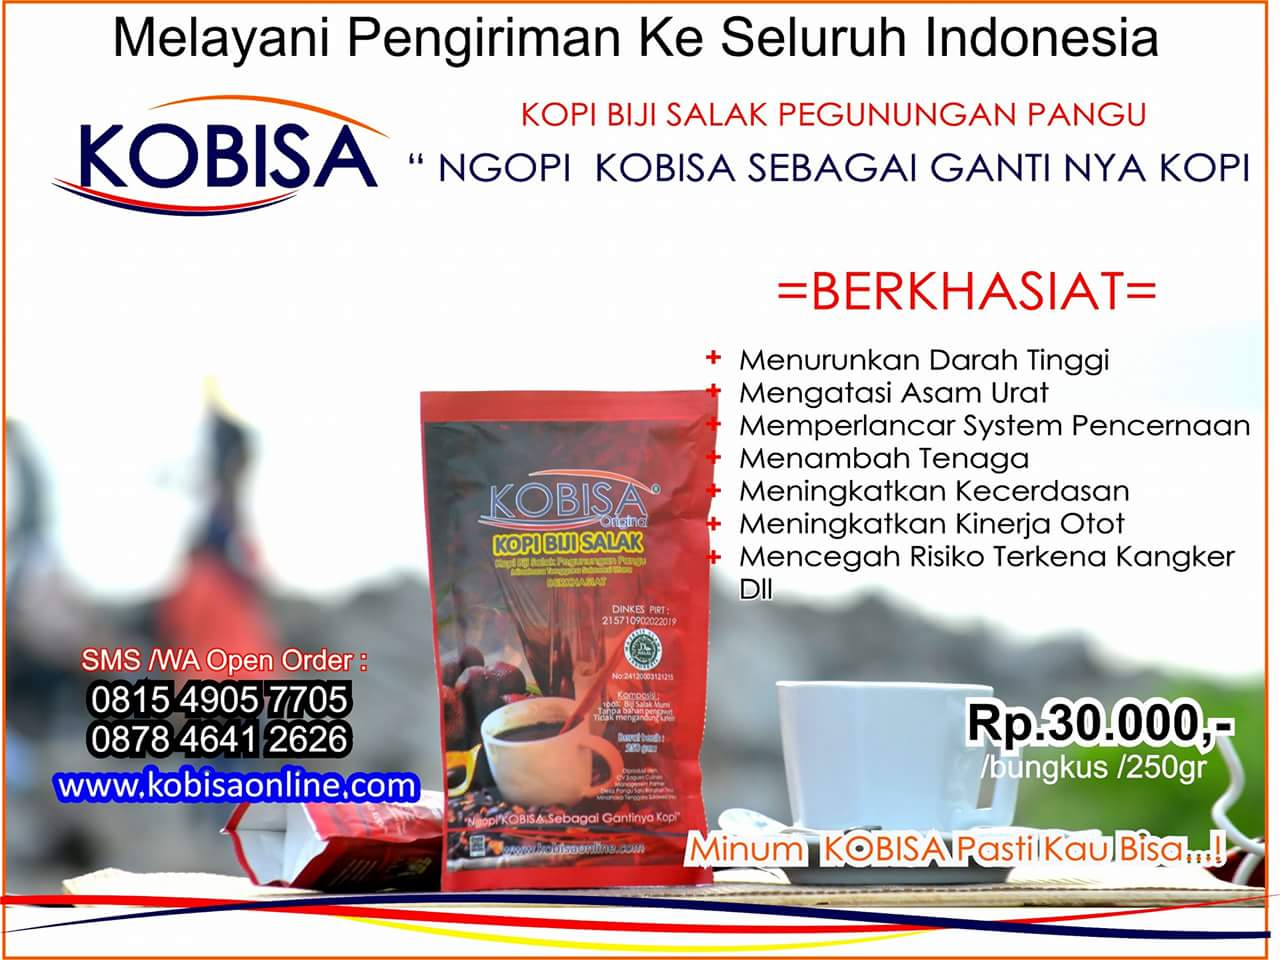 KOPI BIJI SALAK 250 gr Pouch Full Colour